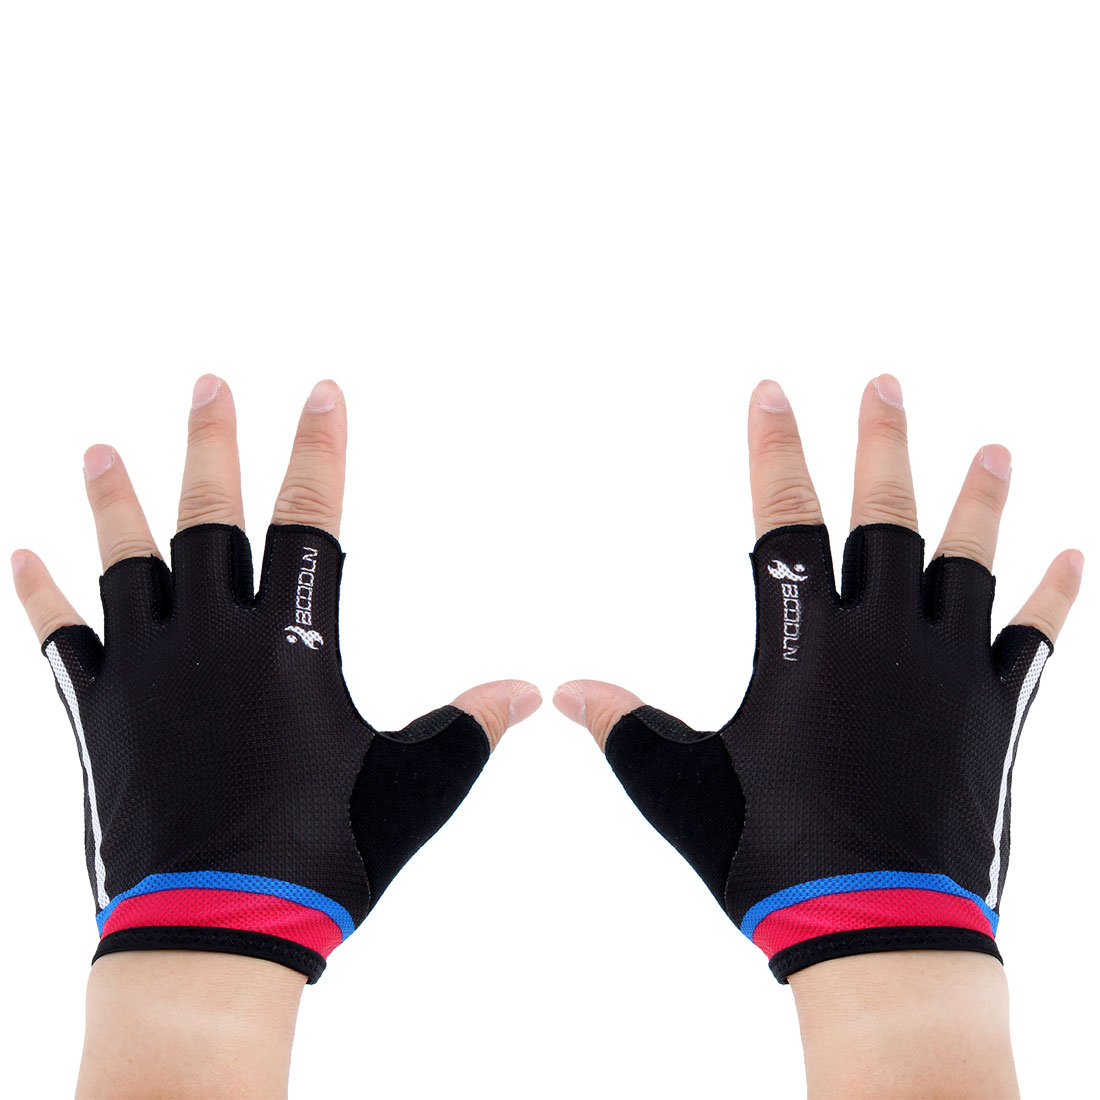 BOODUN Authorized Unisex Gym Workout Training Anti Skid Breathable Fitness Half Finger Gloves #2 M Size Pair